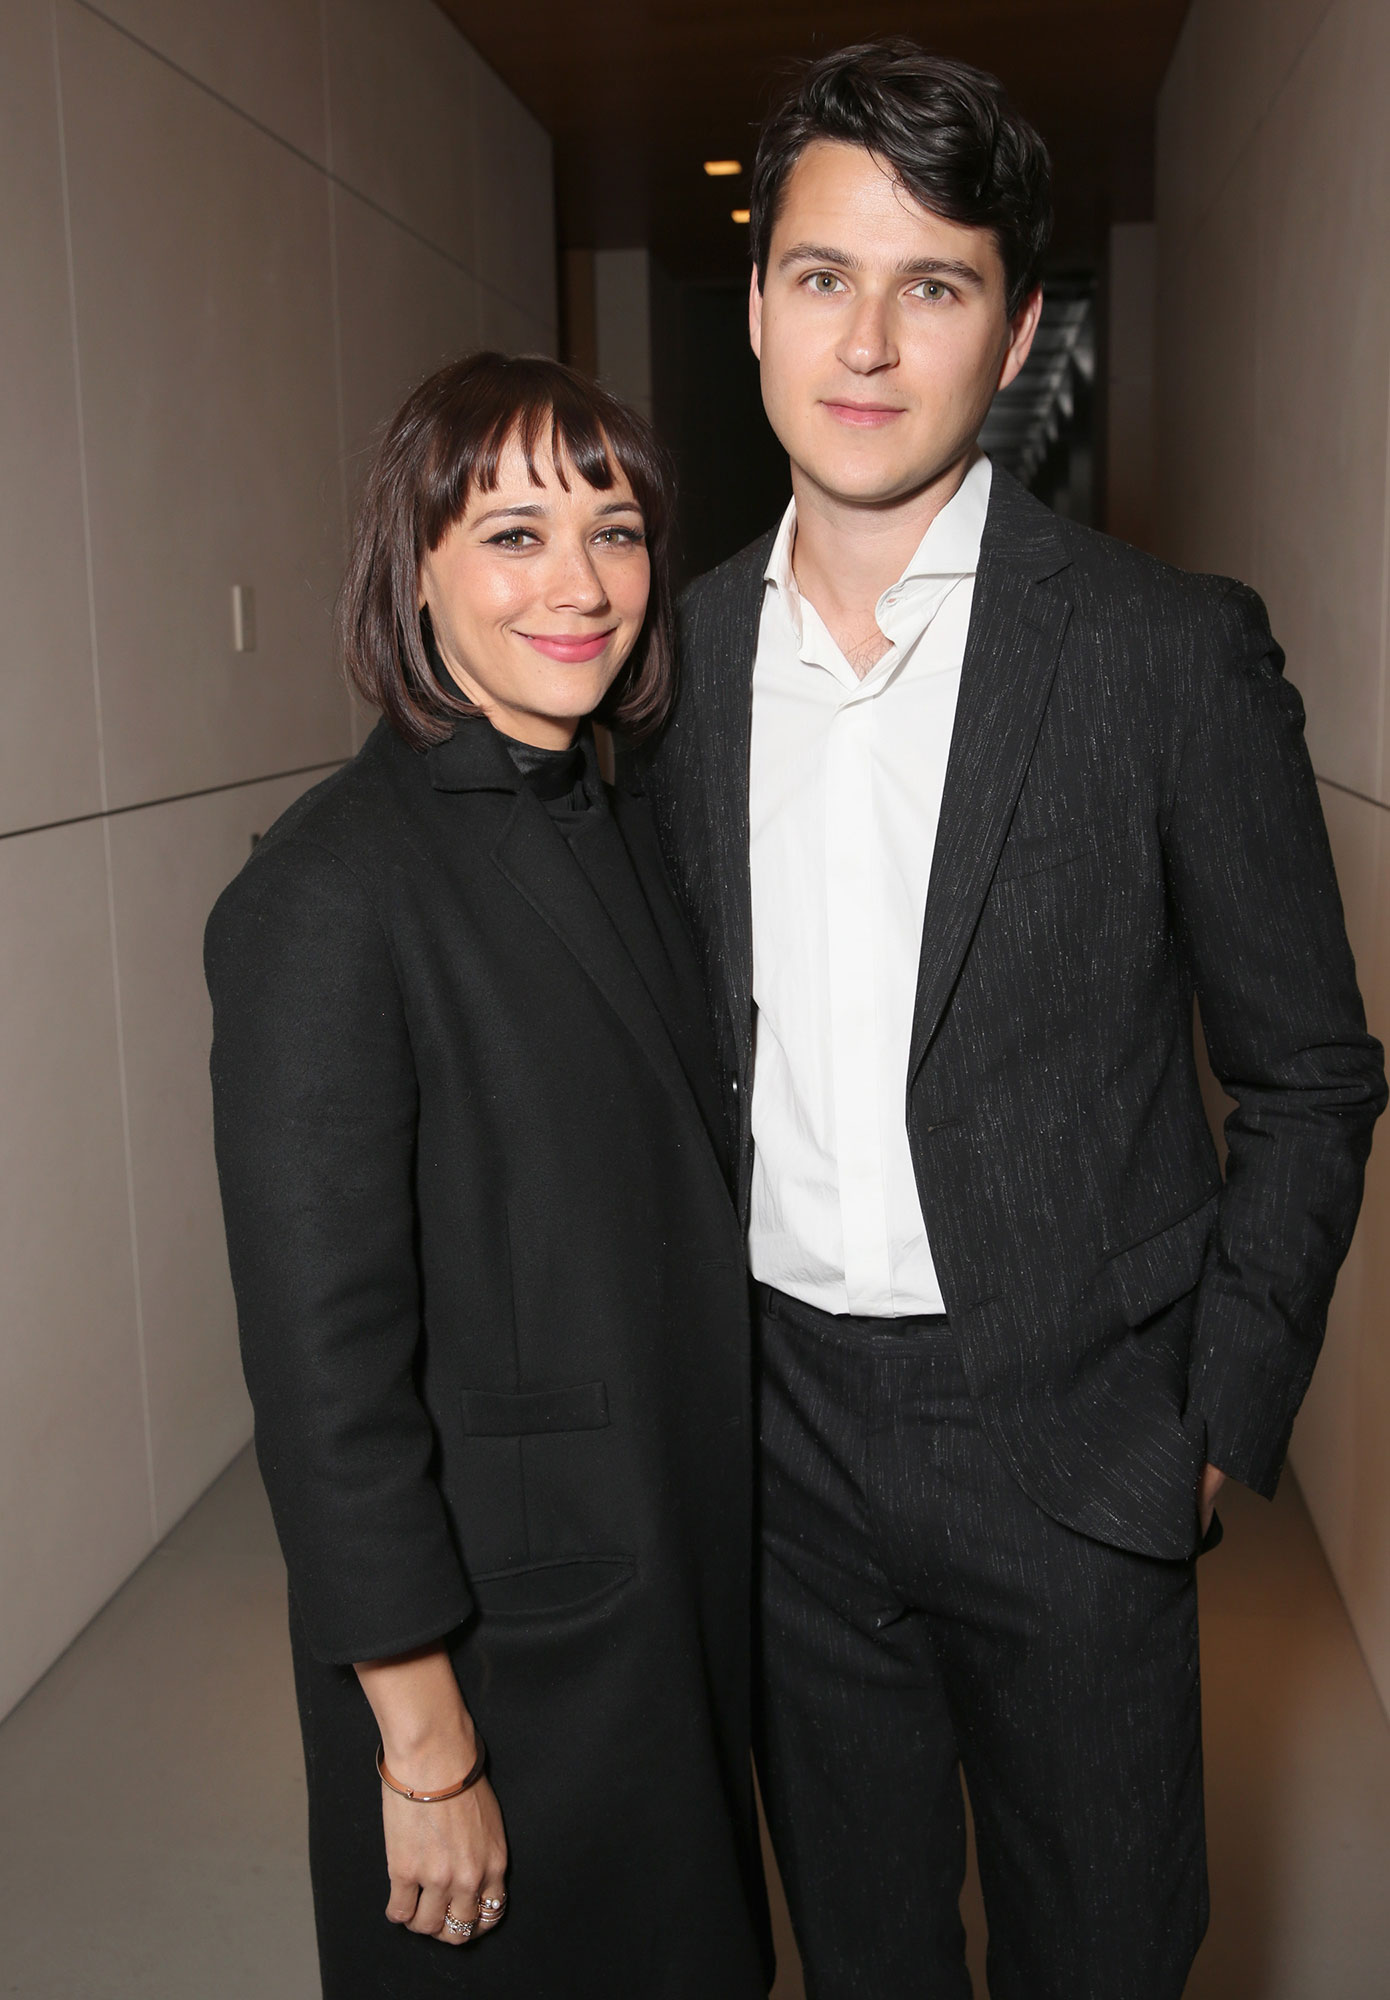 Rashida Jones Ezra Koenig - In September 2018, Us exclusively confirmed the Angie Tribeca star and the Vampire Weekend lead singer had welcomed their first child months prior.